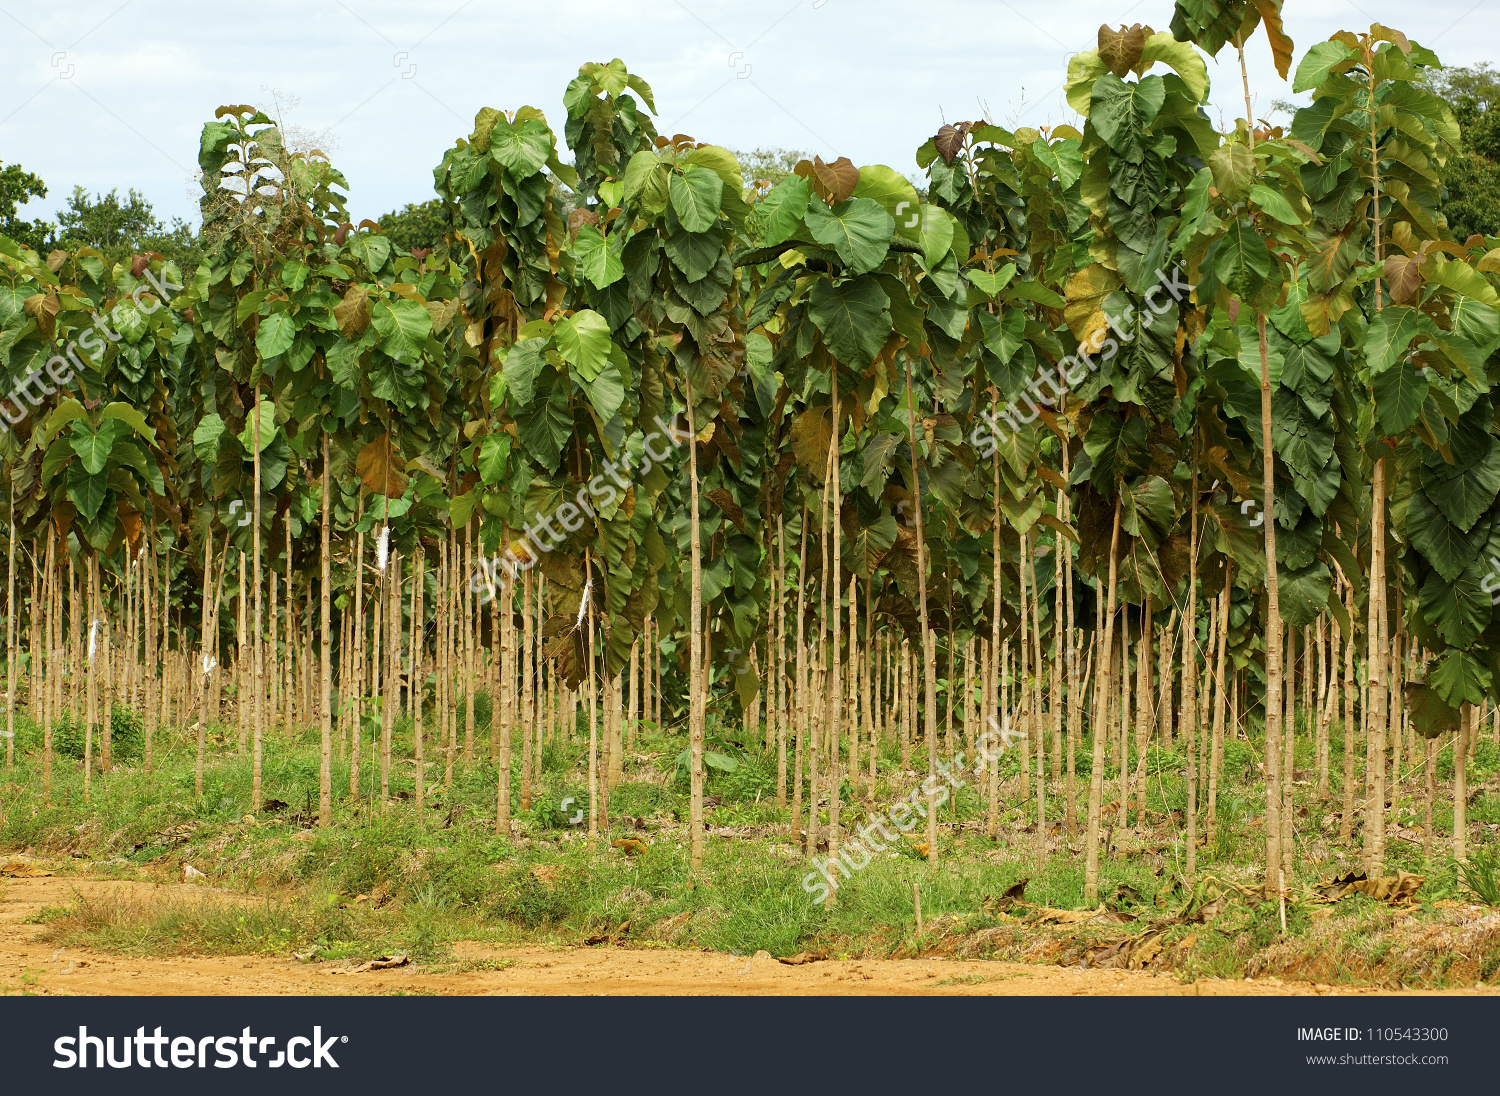 Young Trees Teak Plantation Central America Stock Photo 110543300.